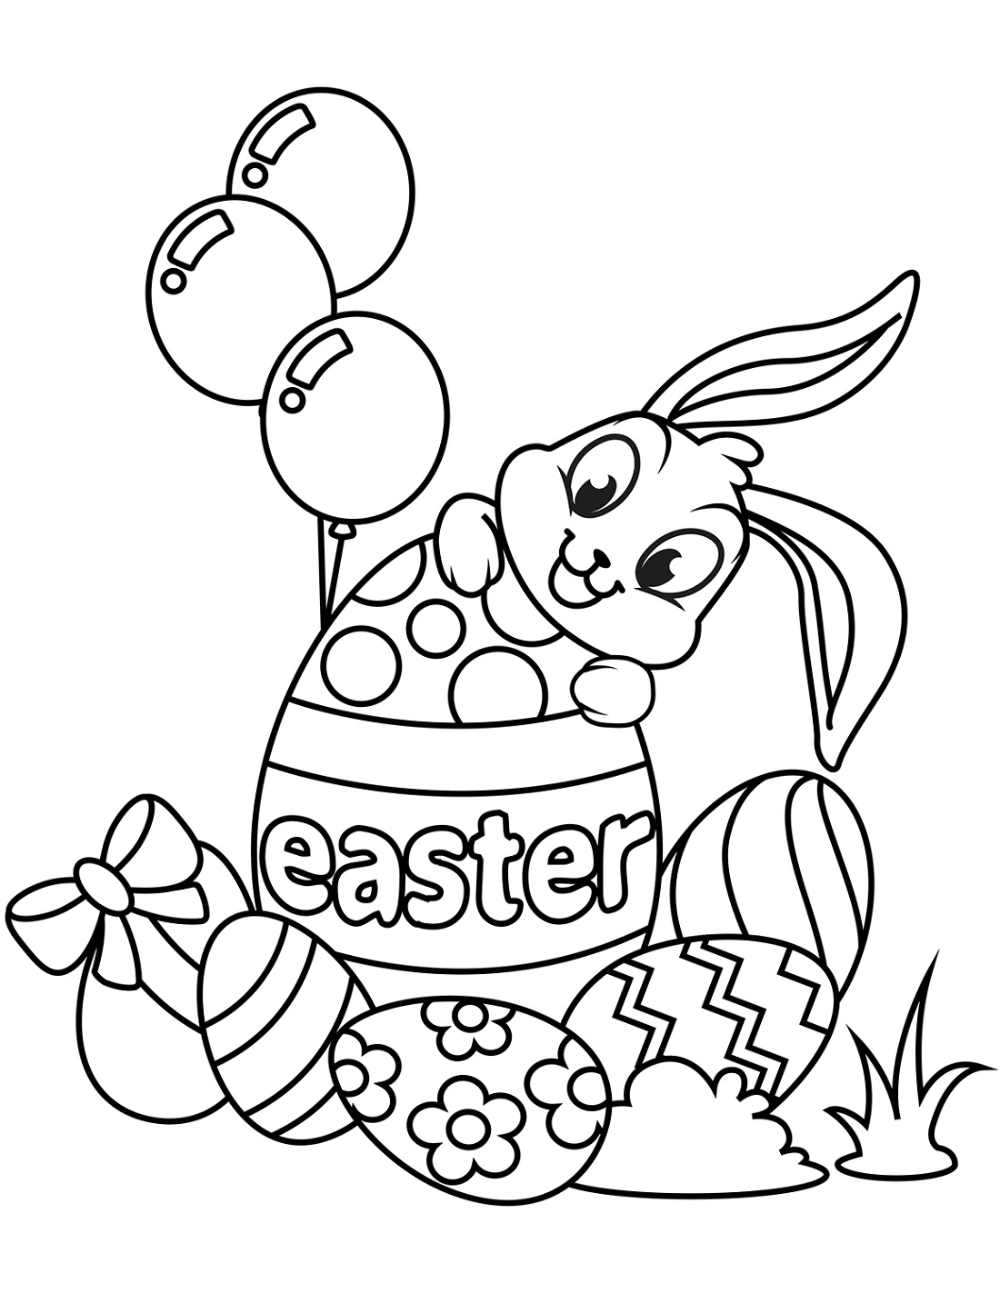 Free And Printable Spring Coloring Pictures 101 Activity Easter Coloring Book Bunny Coloring Pages Easter Bunny Colouring